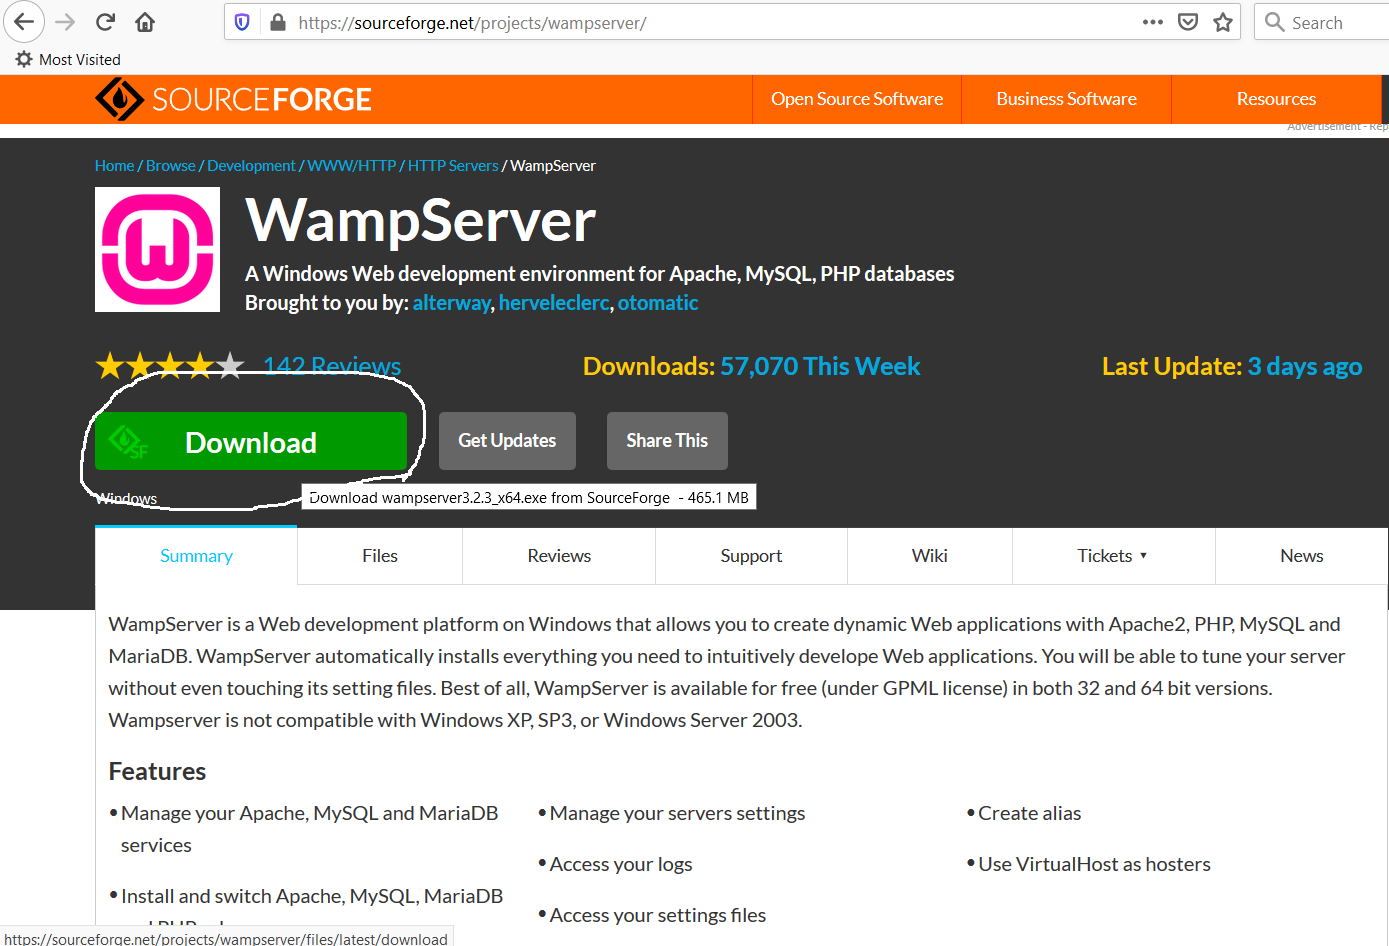 SourceForge Repository